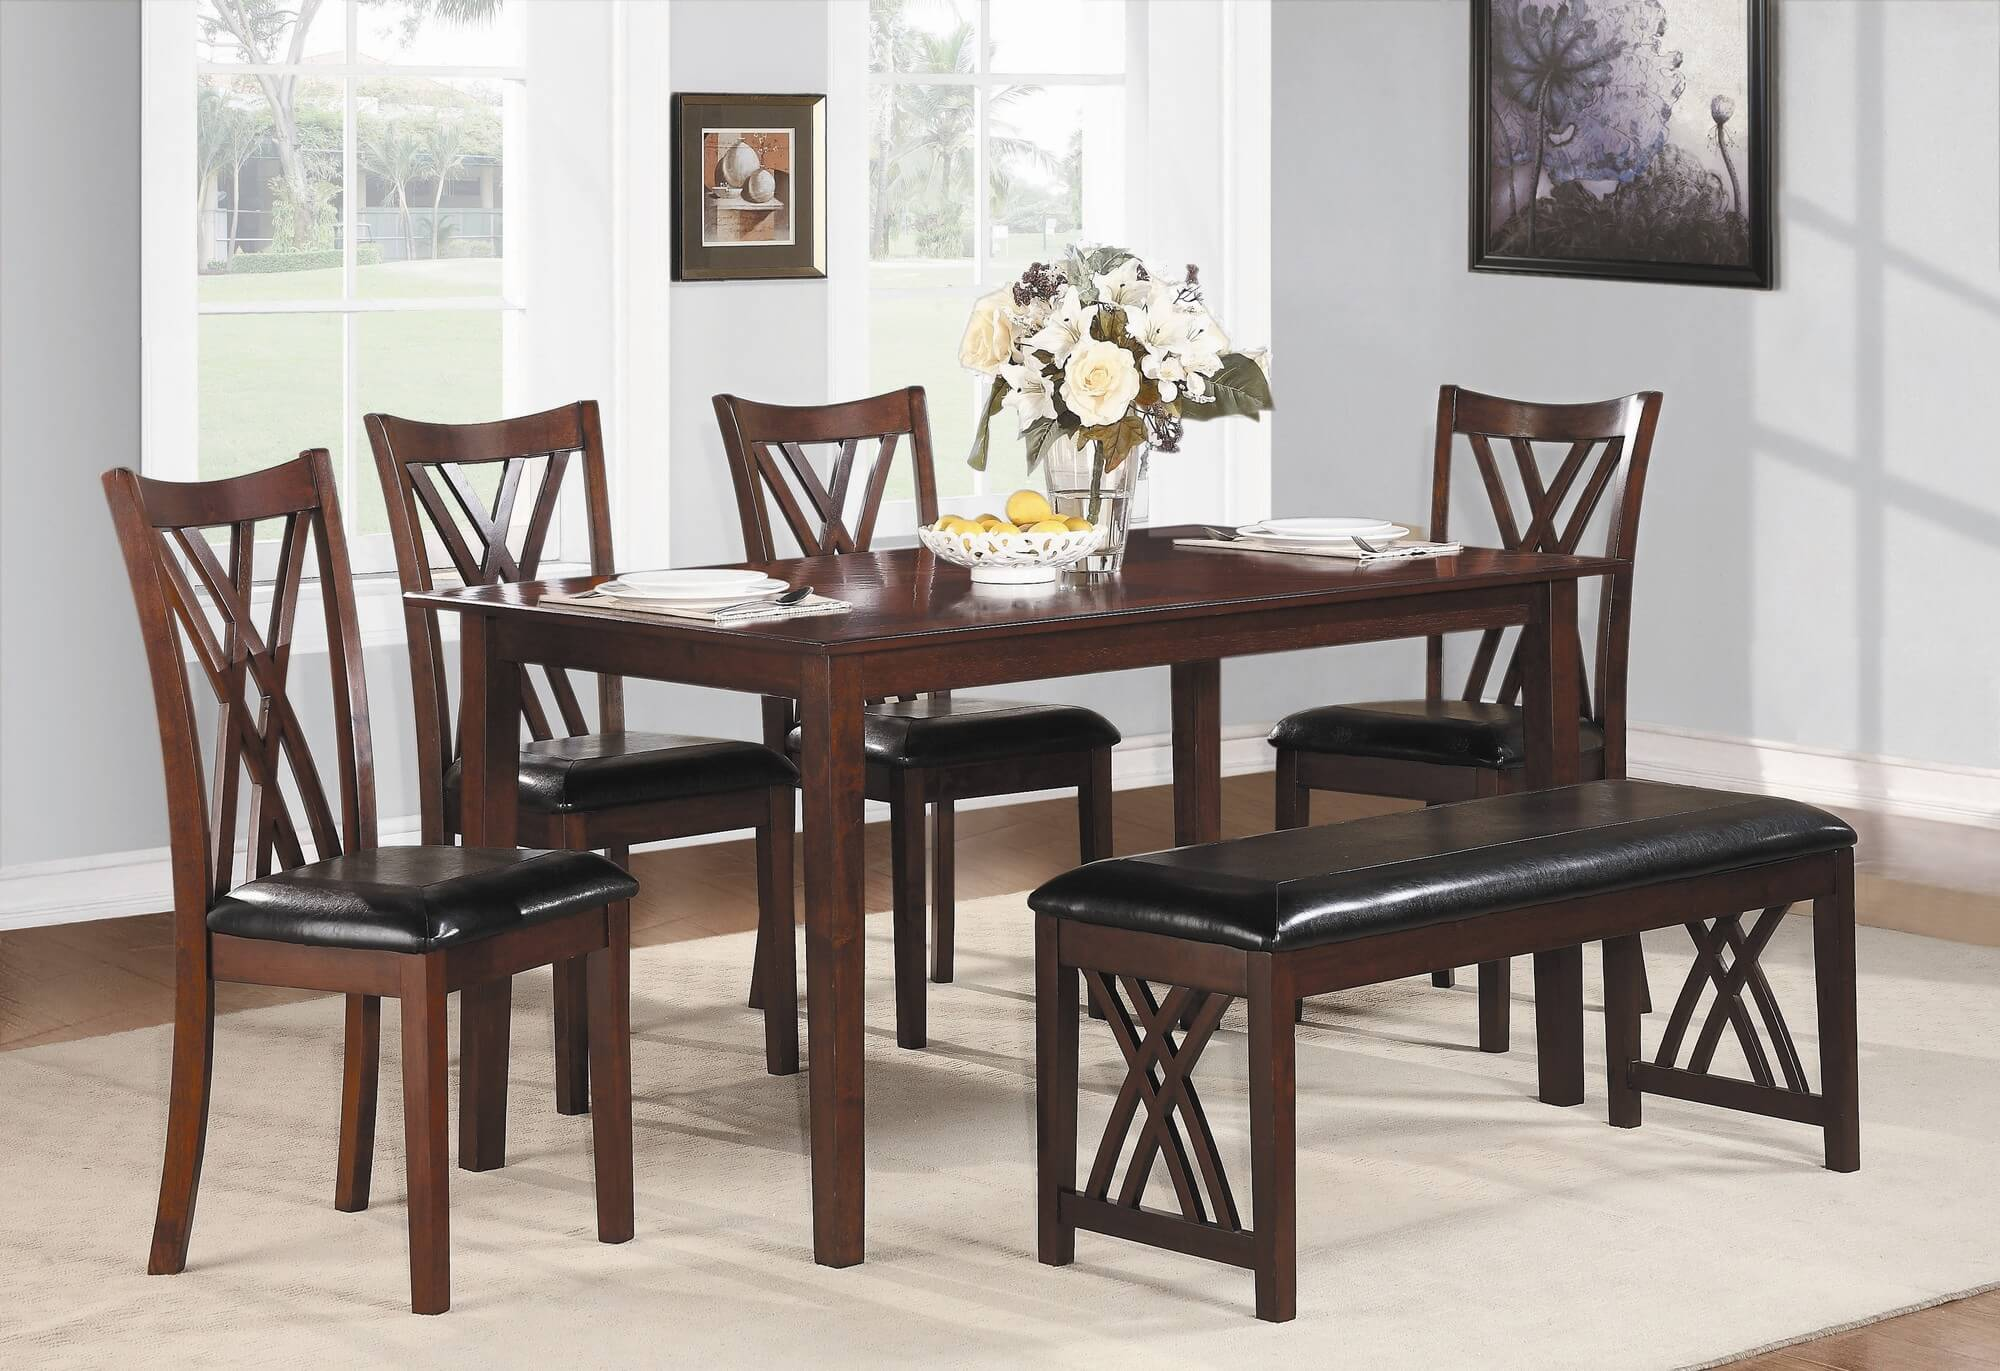 dining room sets bench seating kitchen table sets Six piece dining set with bench with a cherry finish and upholstered chairs and bench